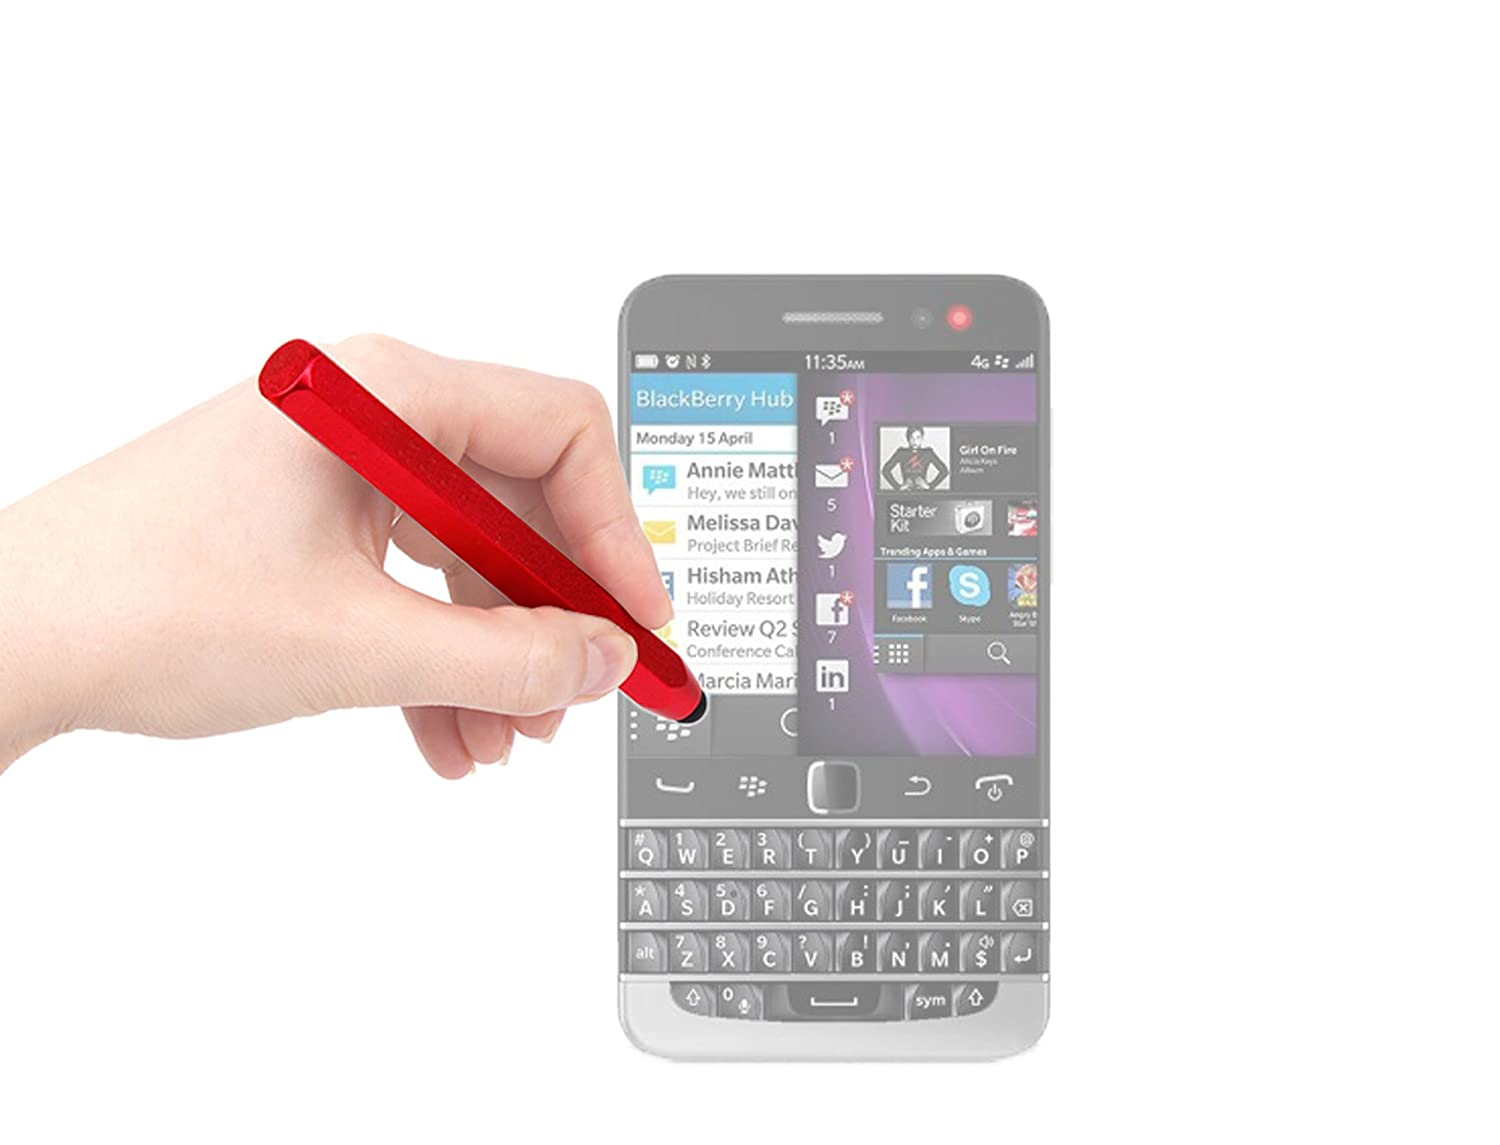 DURAGADGETレッドクレヨン' Touch Screen Stylusペンfor Blackberry q20 Touch/z3 Screen/Jakarta/z3/カーブ9370 B00I8J9WBS, アンティークマイクS:aa7d25d2 --- itxassou.fr